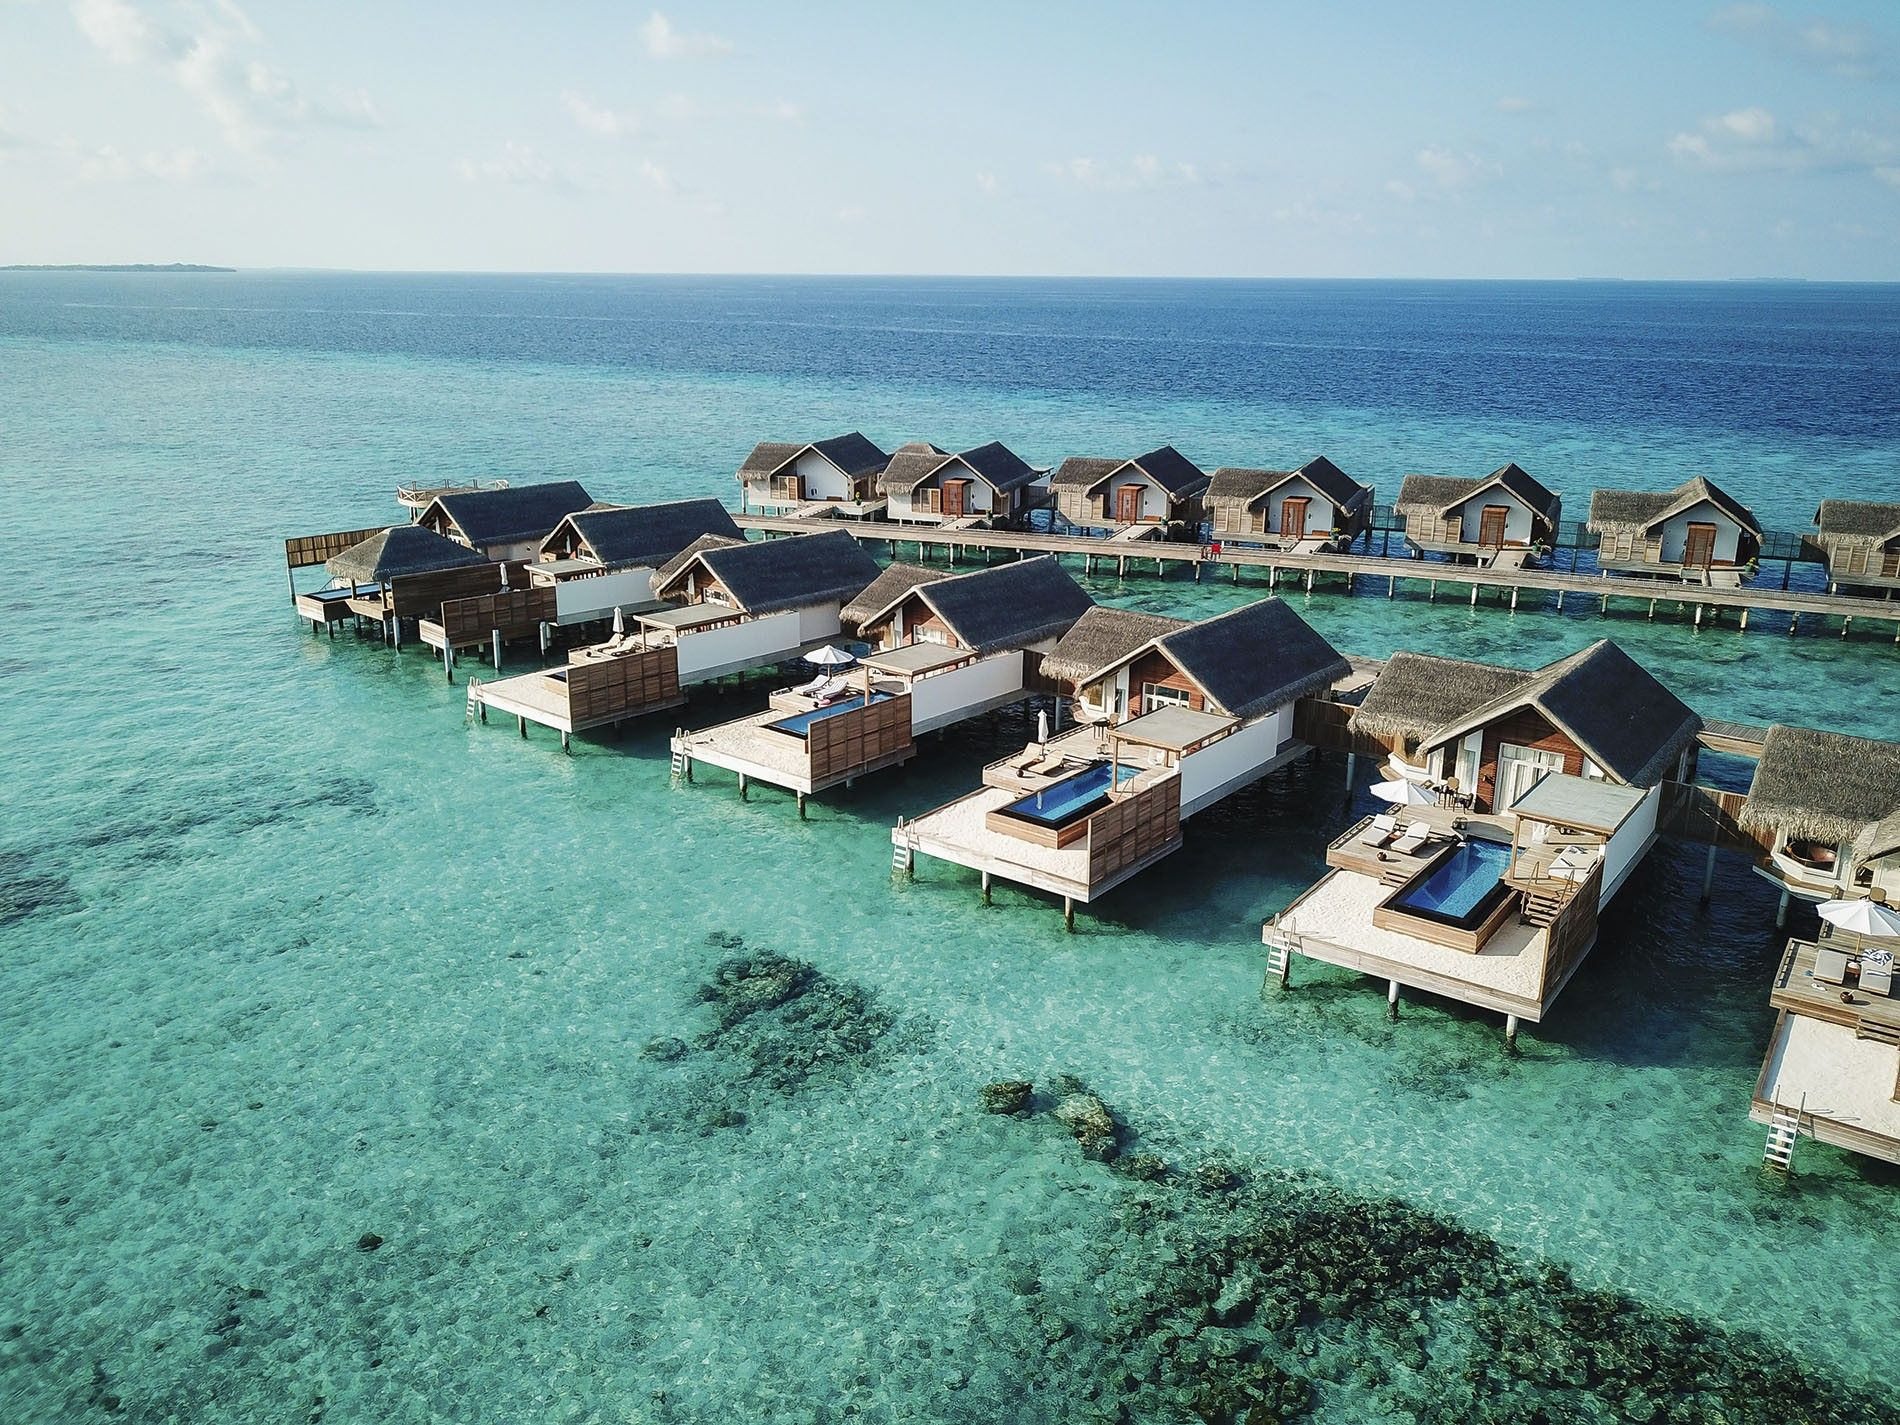 What to explore underwater from the island resort of Fairmont Maldives Sirru Fen Fushi